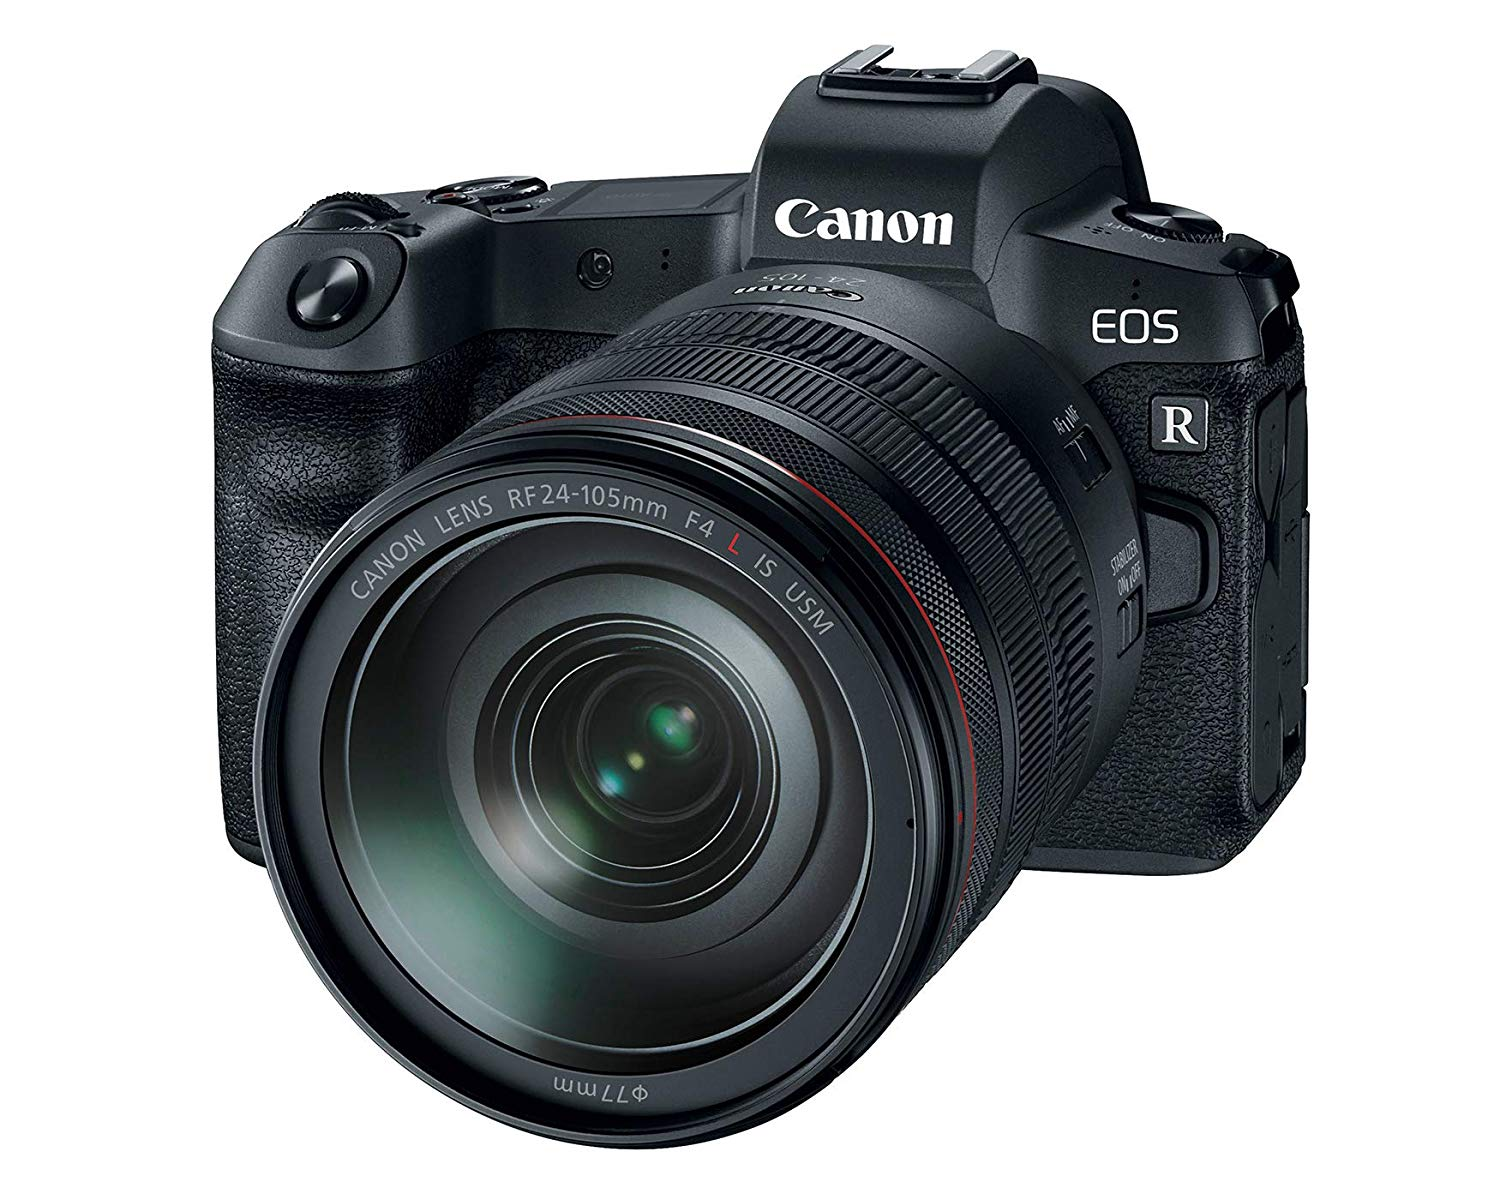 Canon EOS R Mirrorless Digital Camera with 24 105mm Lens image